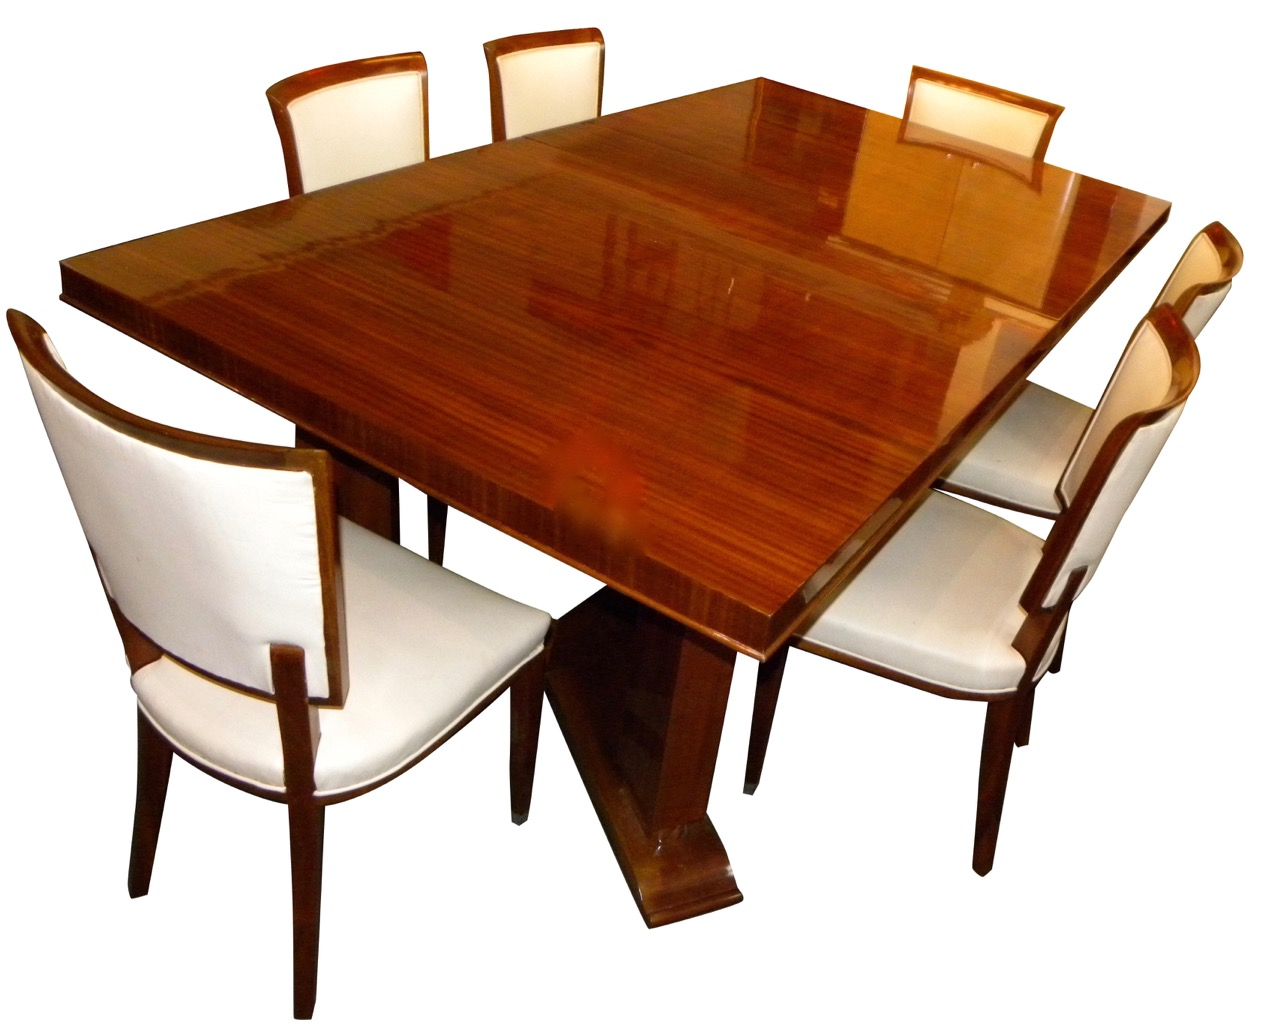 Art deco dining room furniture for sale tables and for Dining room table sets for sale